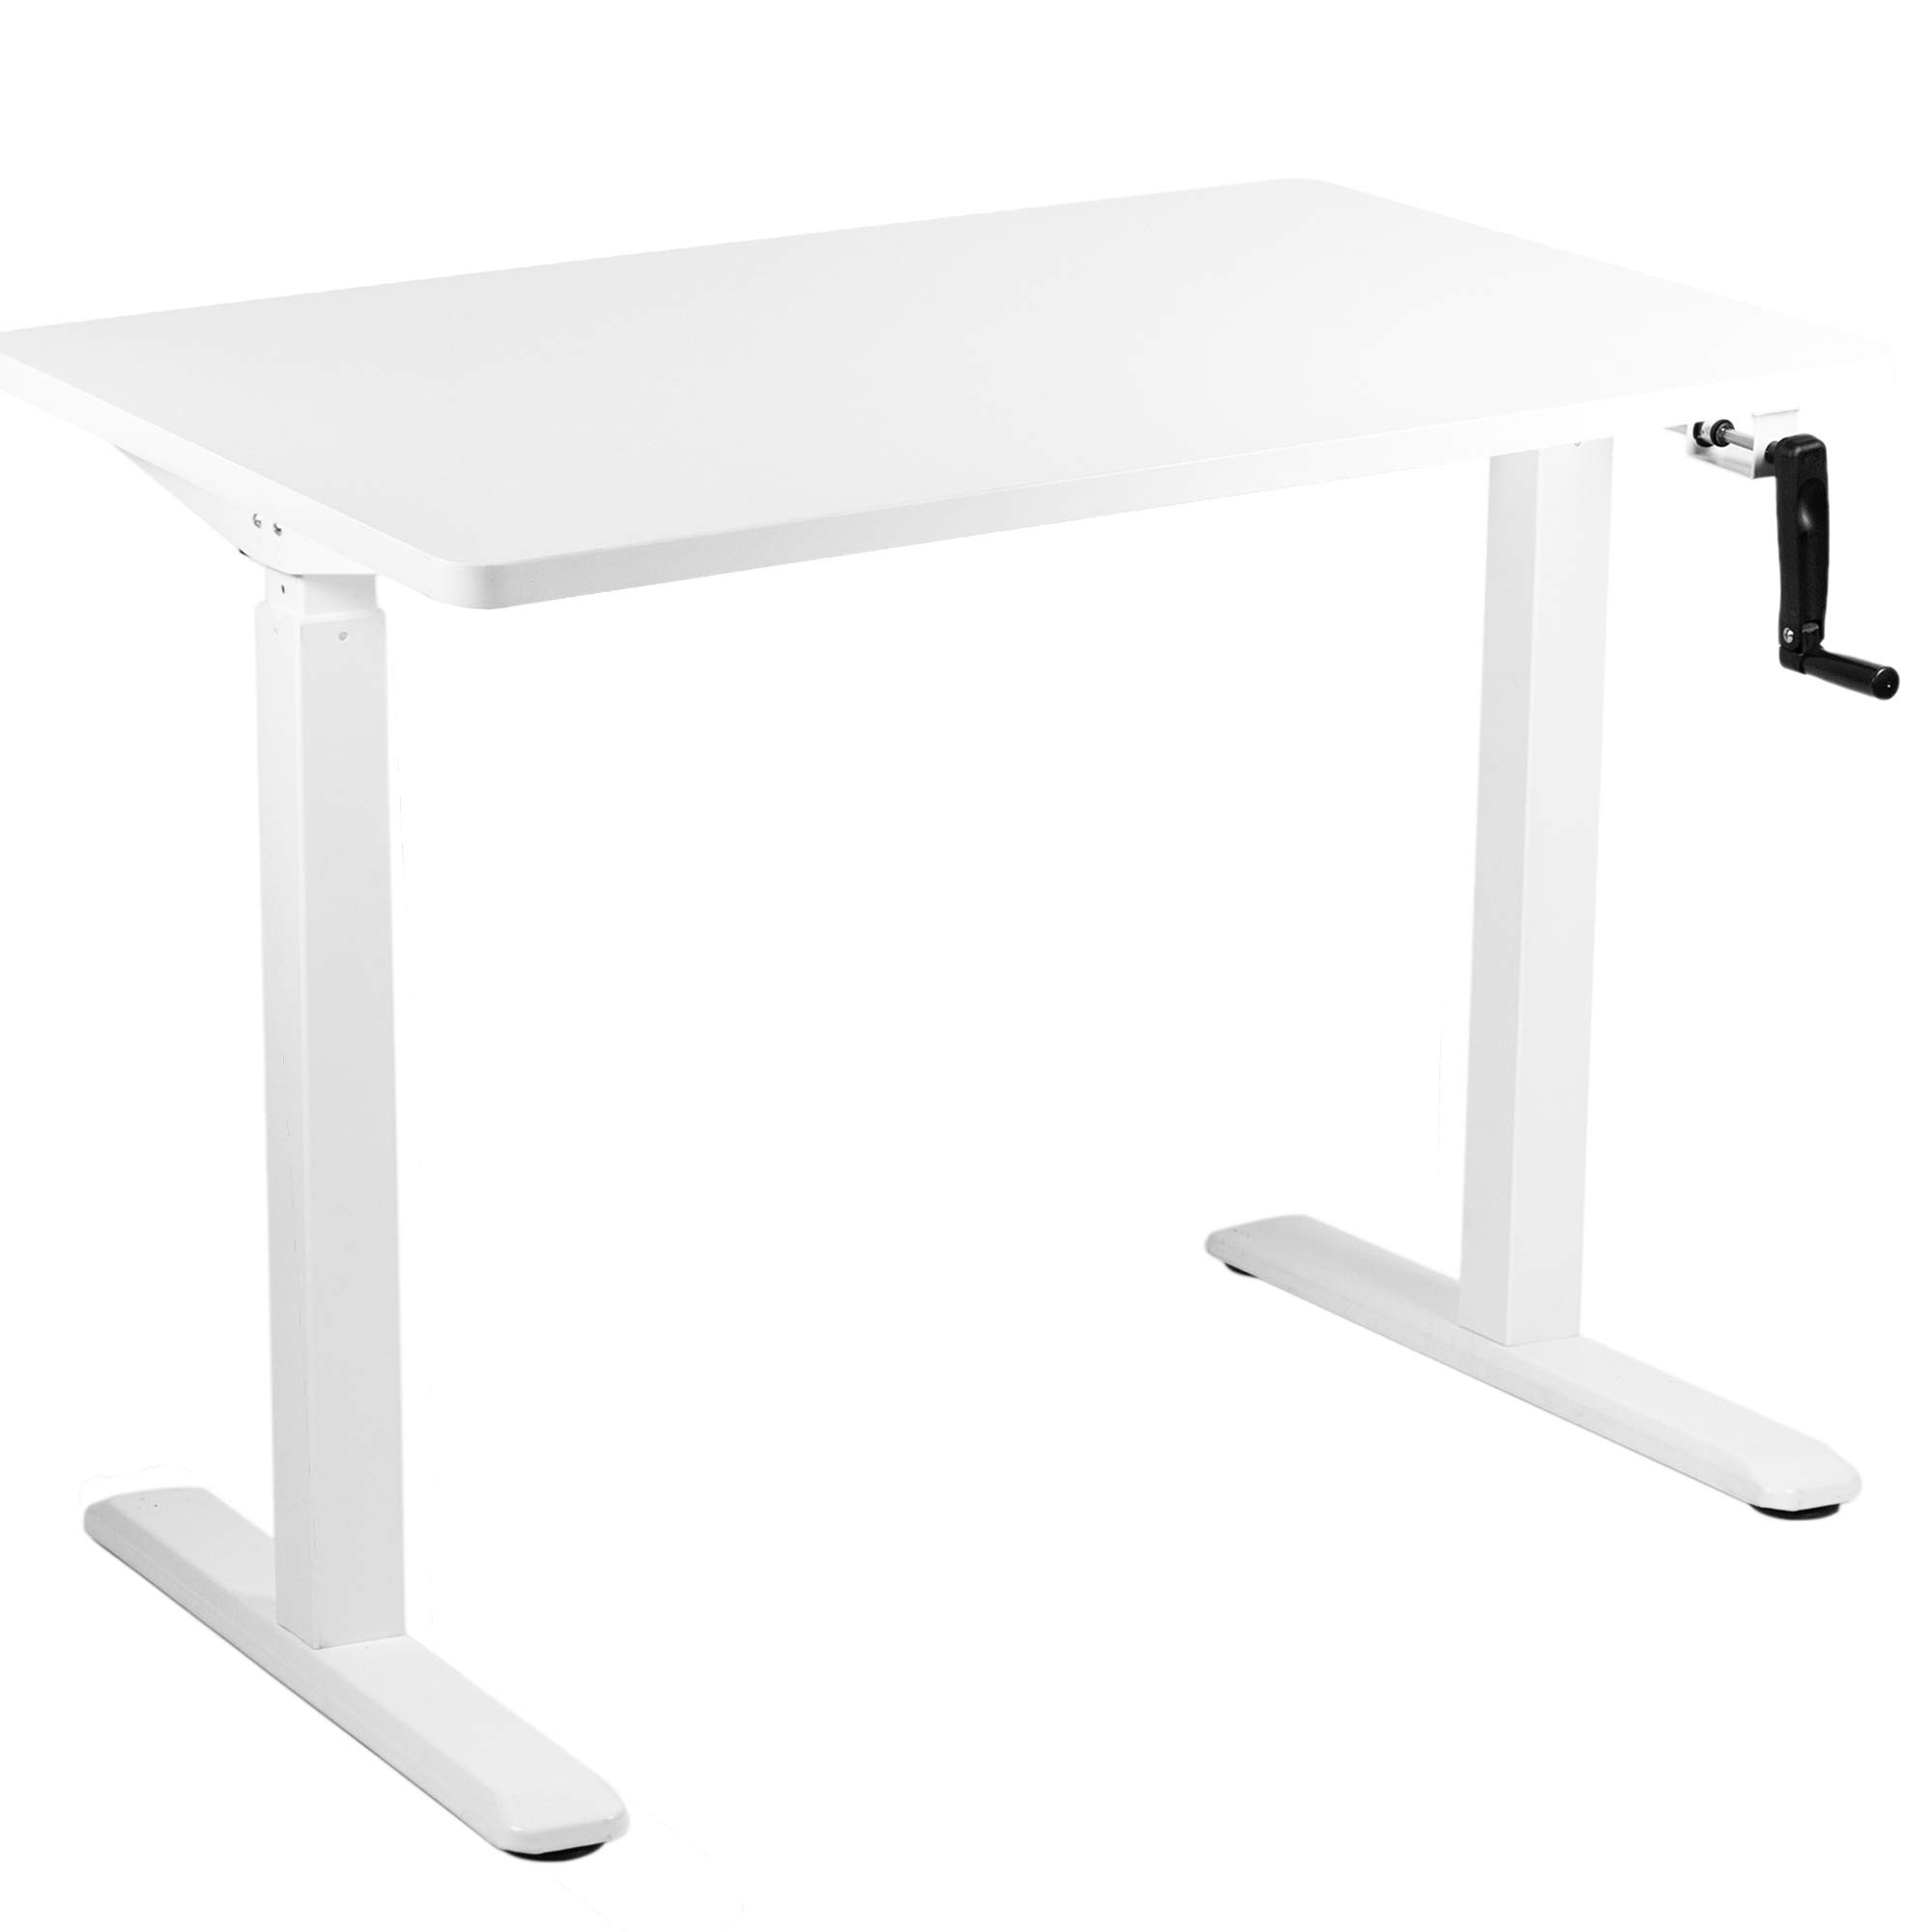 VIVO Manual 43'' x 24'' Stand Up Desk | White Table Top, White Frame, Height Adjustable Standing Workstation with Hand Crank (DESK-KIT-MW4W) by VIVO